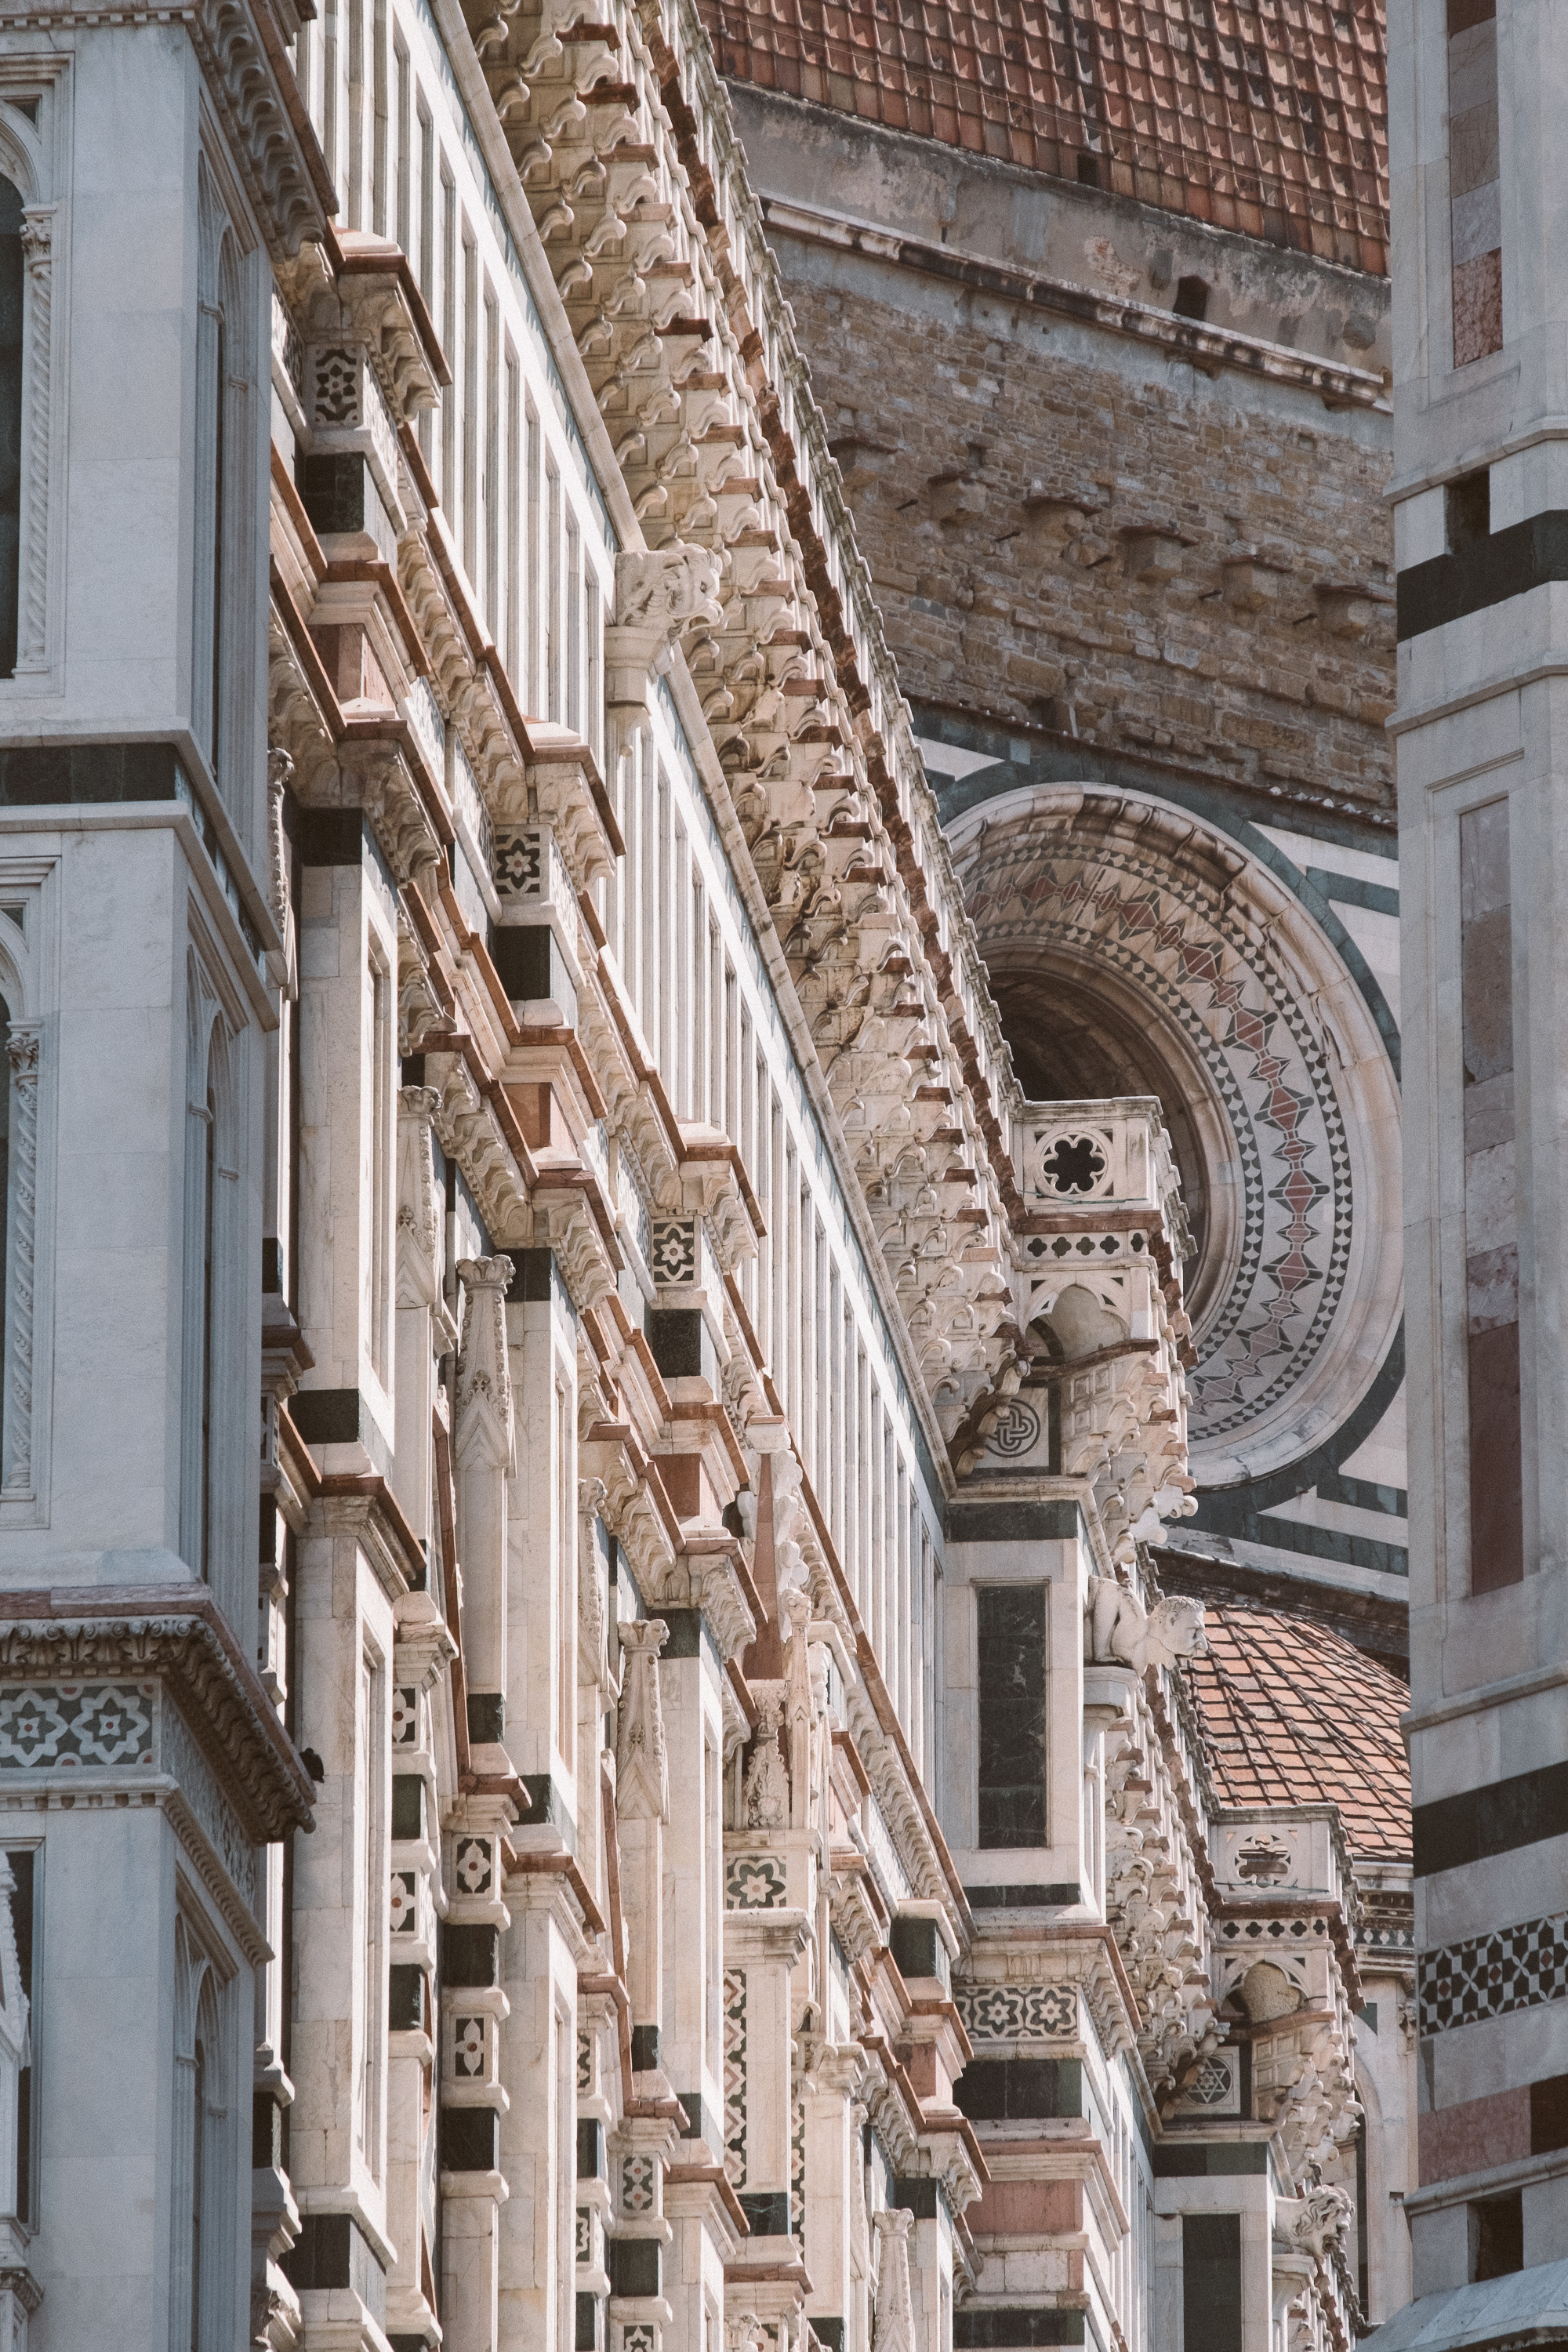 fat_creative_travel_blog_3_things_you_should_know_when_visiting_florence-7.jpg